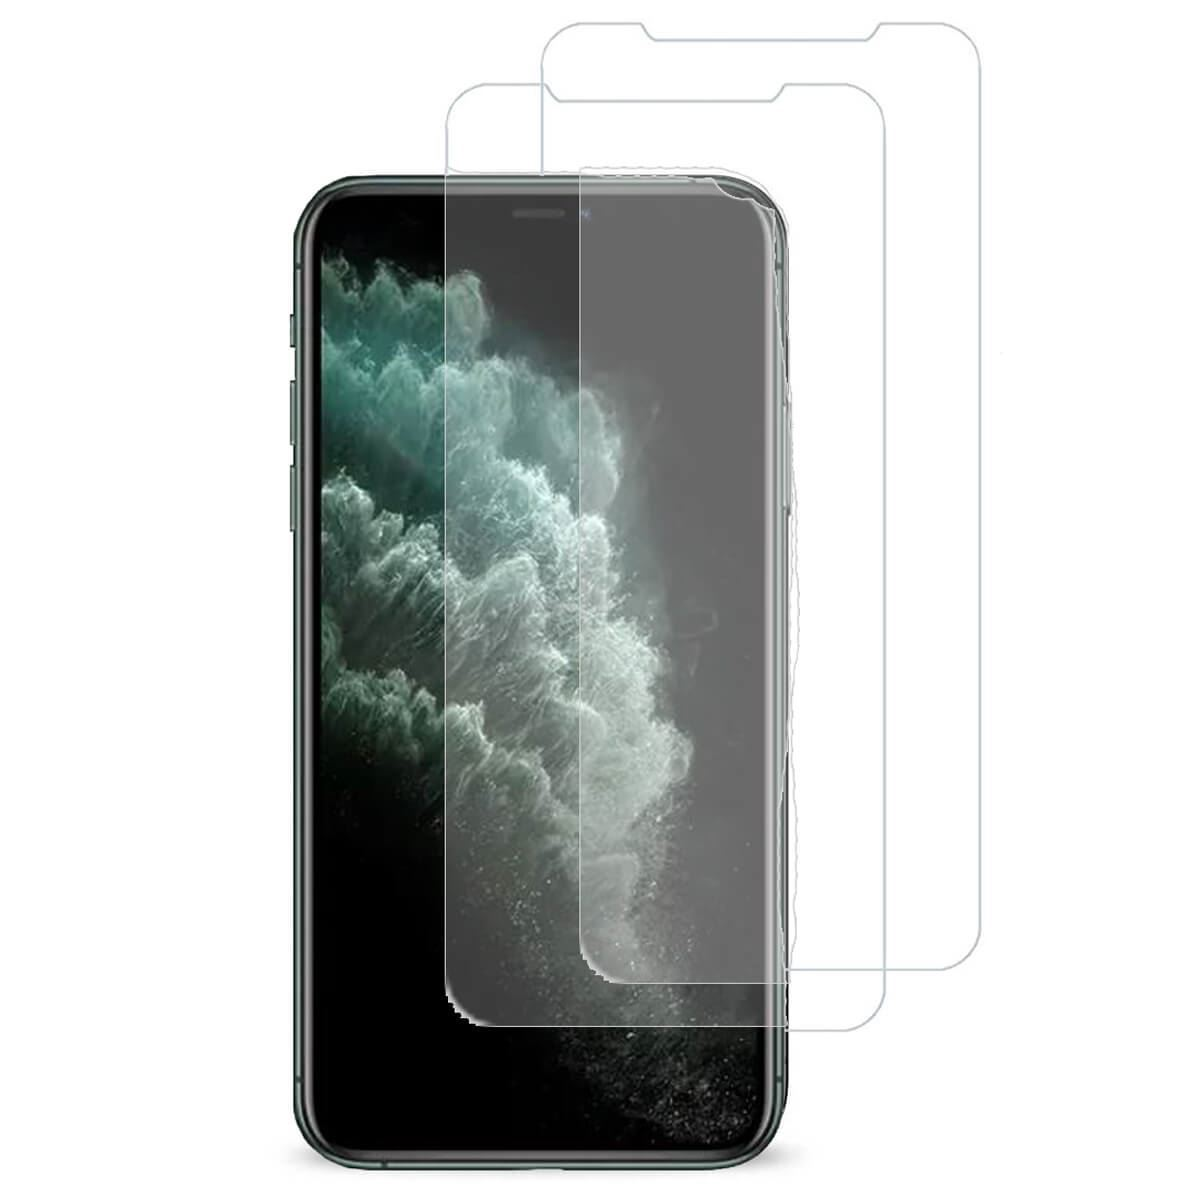 iPhone 11 Pro Tempered Glass Screen Protector 2 Pack